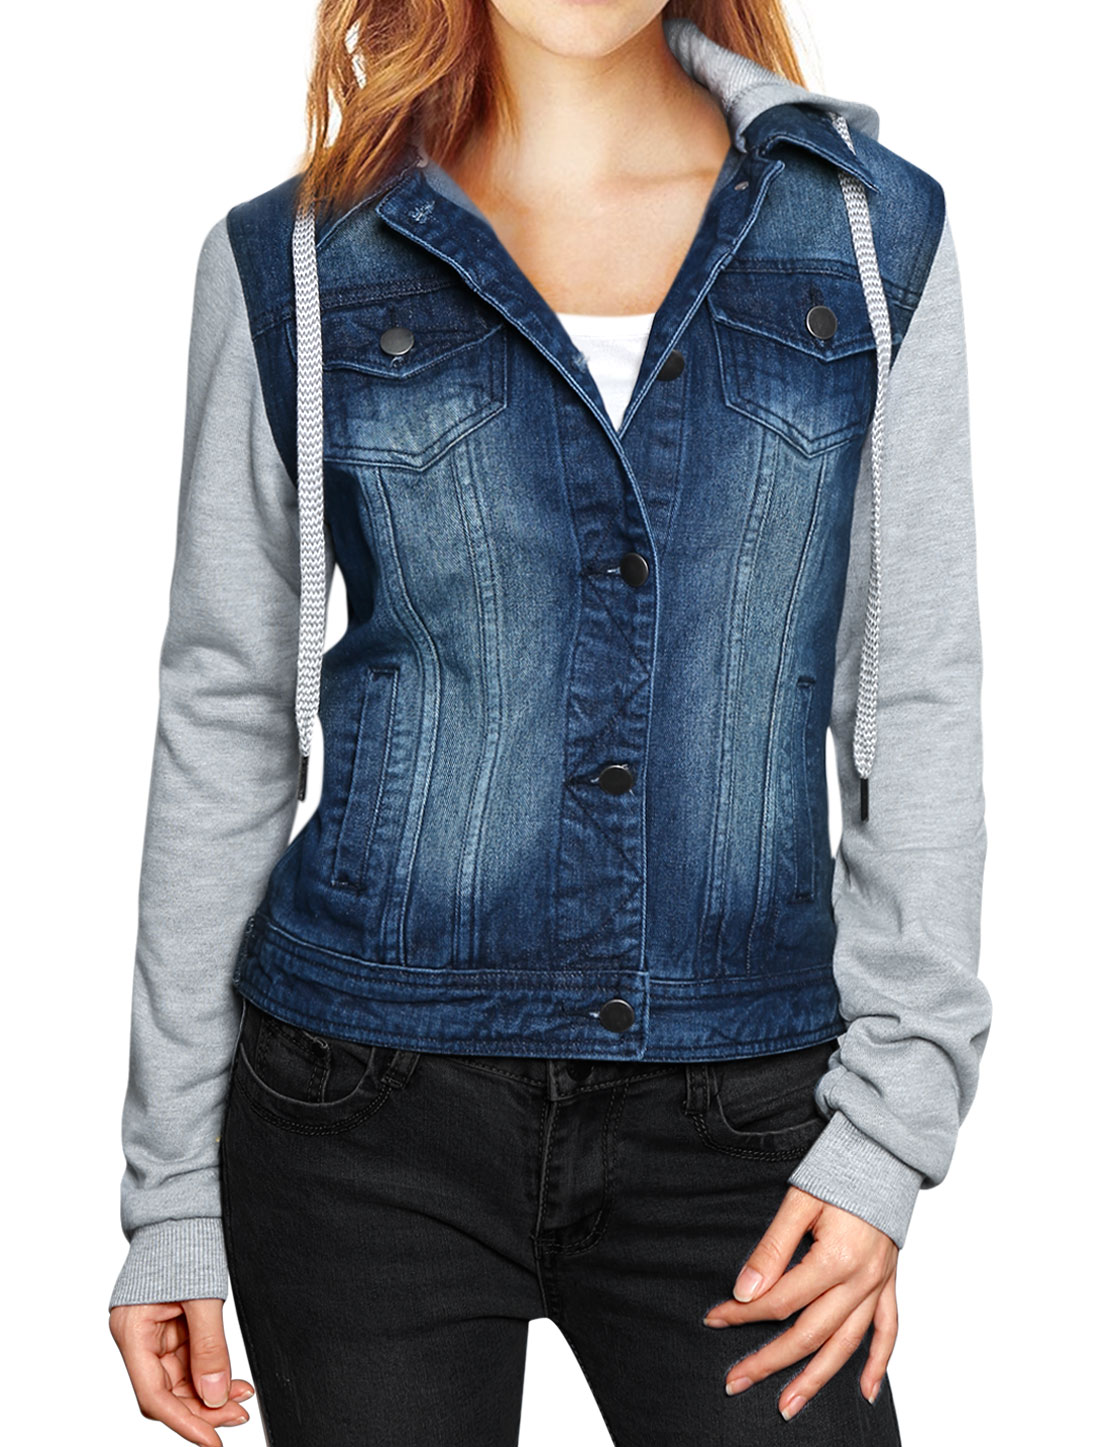 Denim Jackets Outerwear. Showing 48 of results that match your query. Product Title. Time and Tru Women's Hooded Anorak Utility Jacket. See Details. Product - Time and Tru Women's Hooded Puffer Jacket. New. Product Image. Price $ Product Title. Time and Tru Women's Hooded Puffer Cover Girl Jeans Denim Jacket for Women.